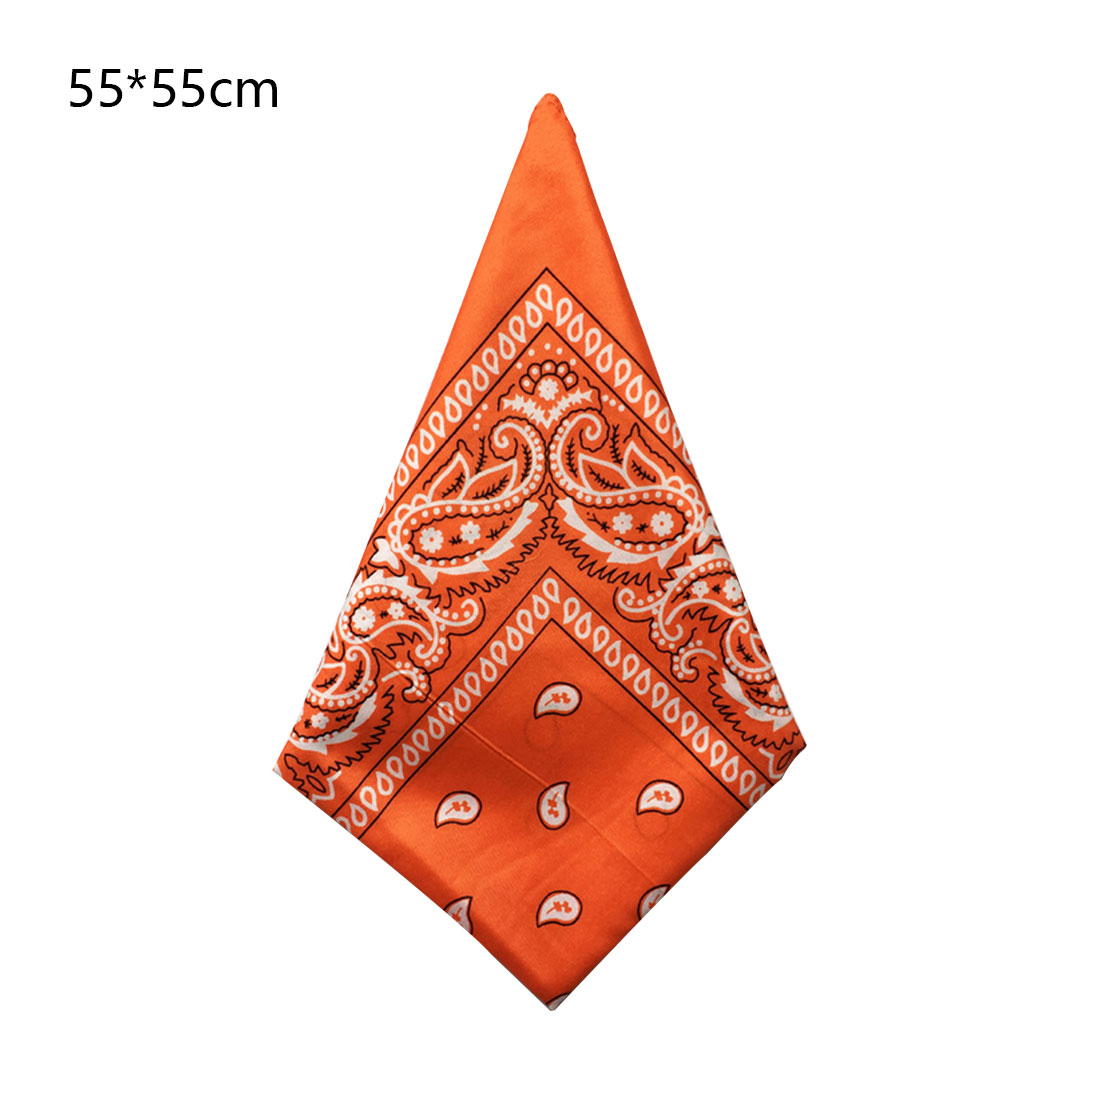 2017 Comfortable Sales 55Cm*55Cm Black Red Paisley Printed Bandanas For Women/Men/Boys/Girls(China)